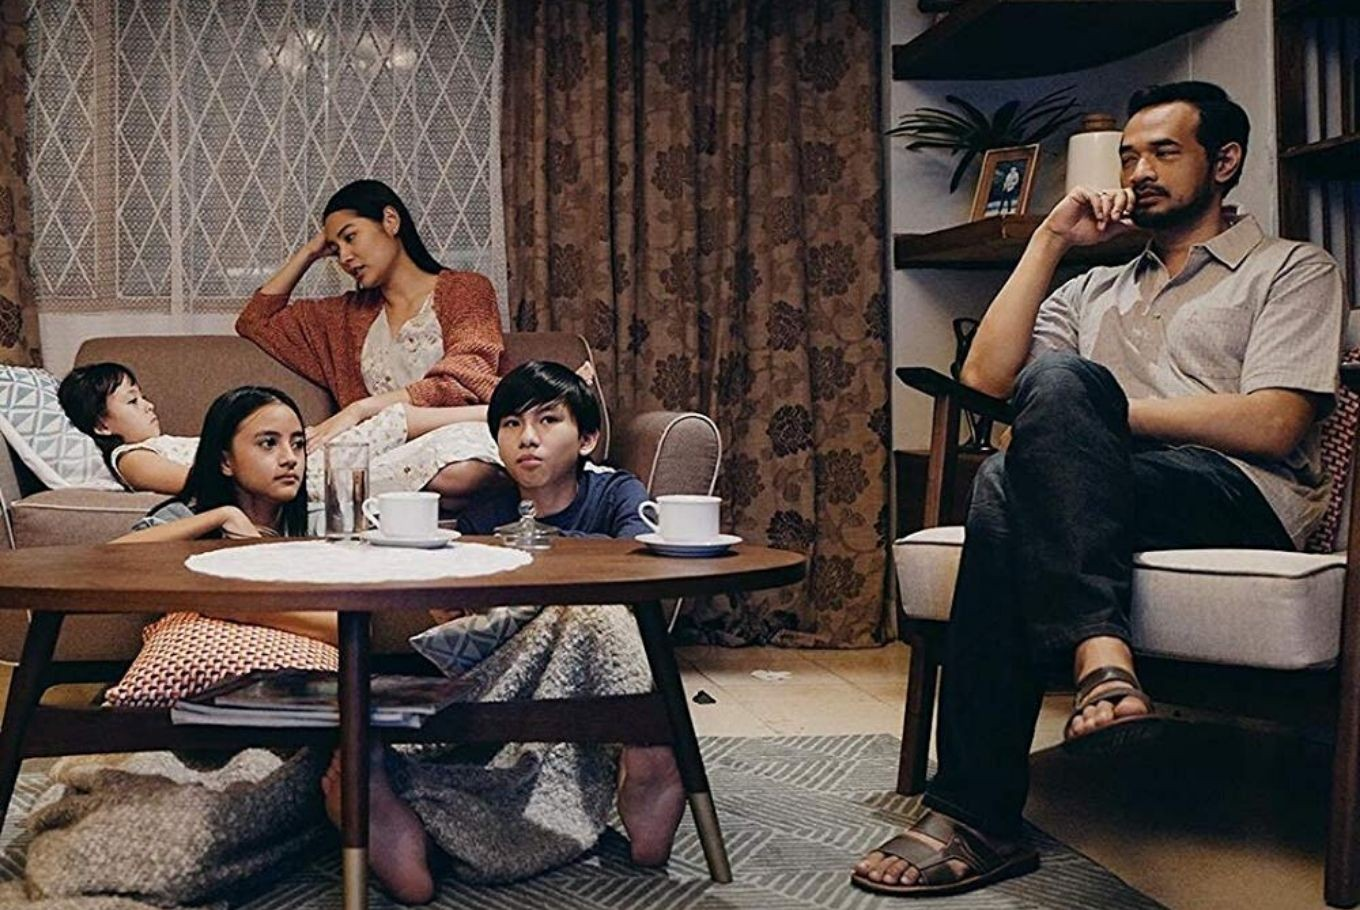 'NKCTHI': Portrait of family haunted by loss, trauma and ghost of New Order